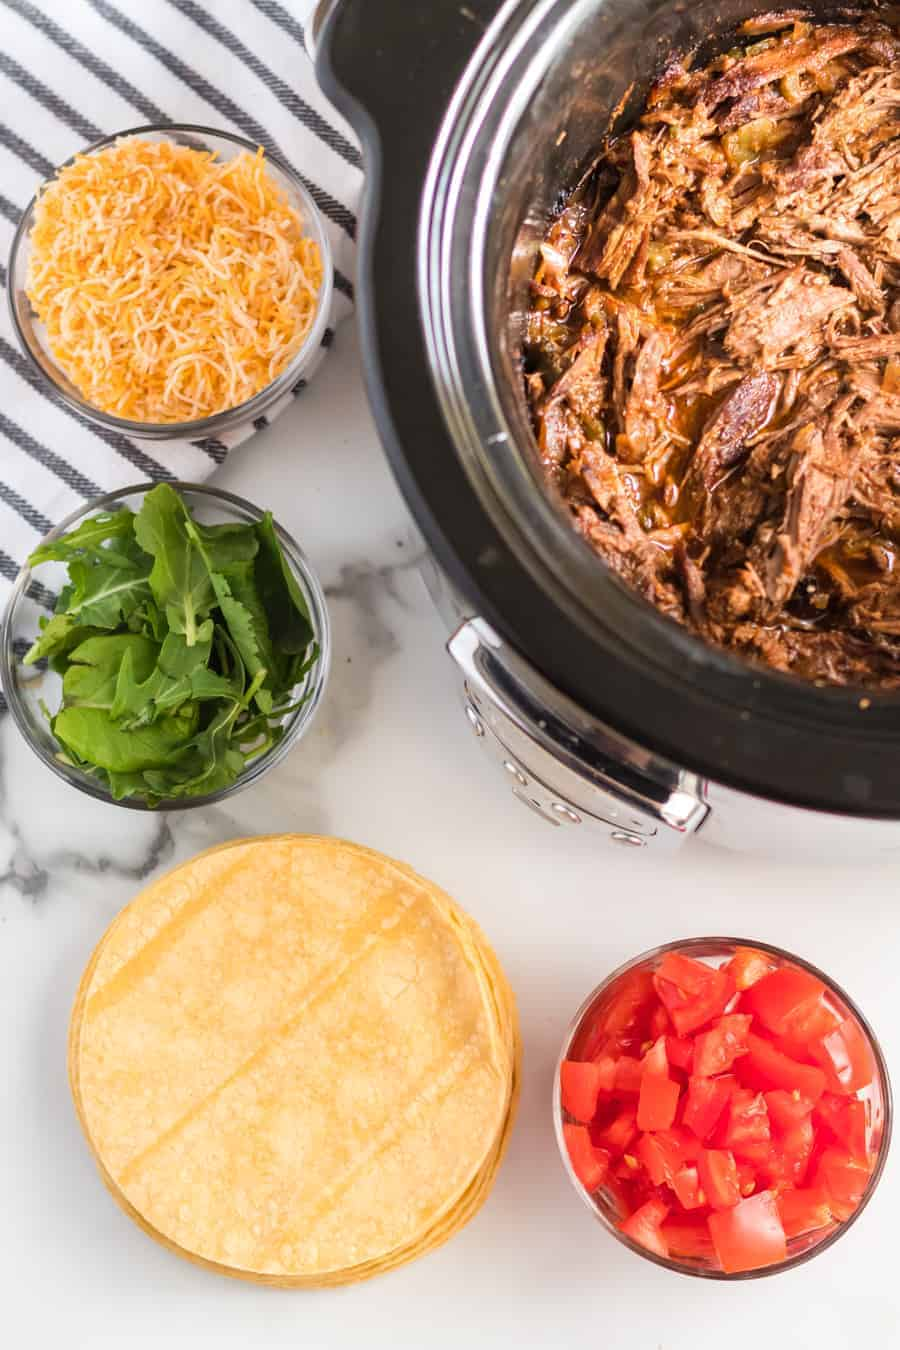 Smoky and hearty Steak Carnitas Meat in the Crock-Pot is one of the best set-it-and-forget-it meals that's exquisitely flavored and makes some tender and rich tacos.